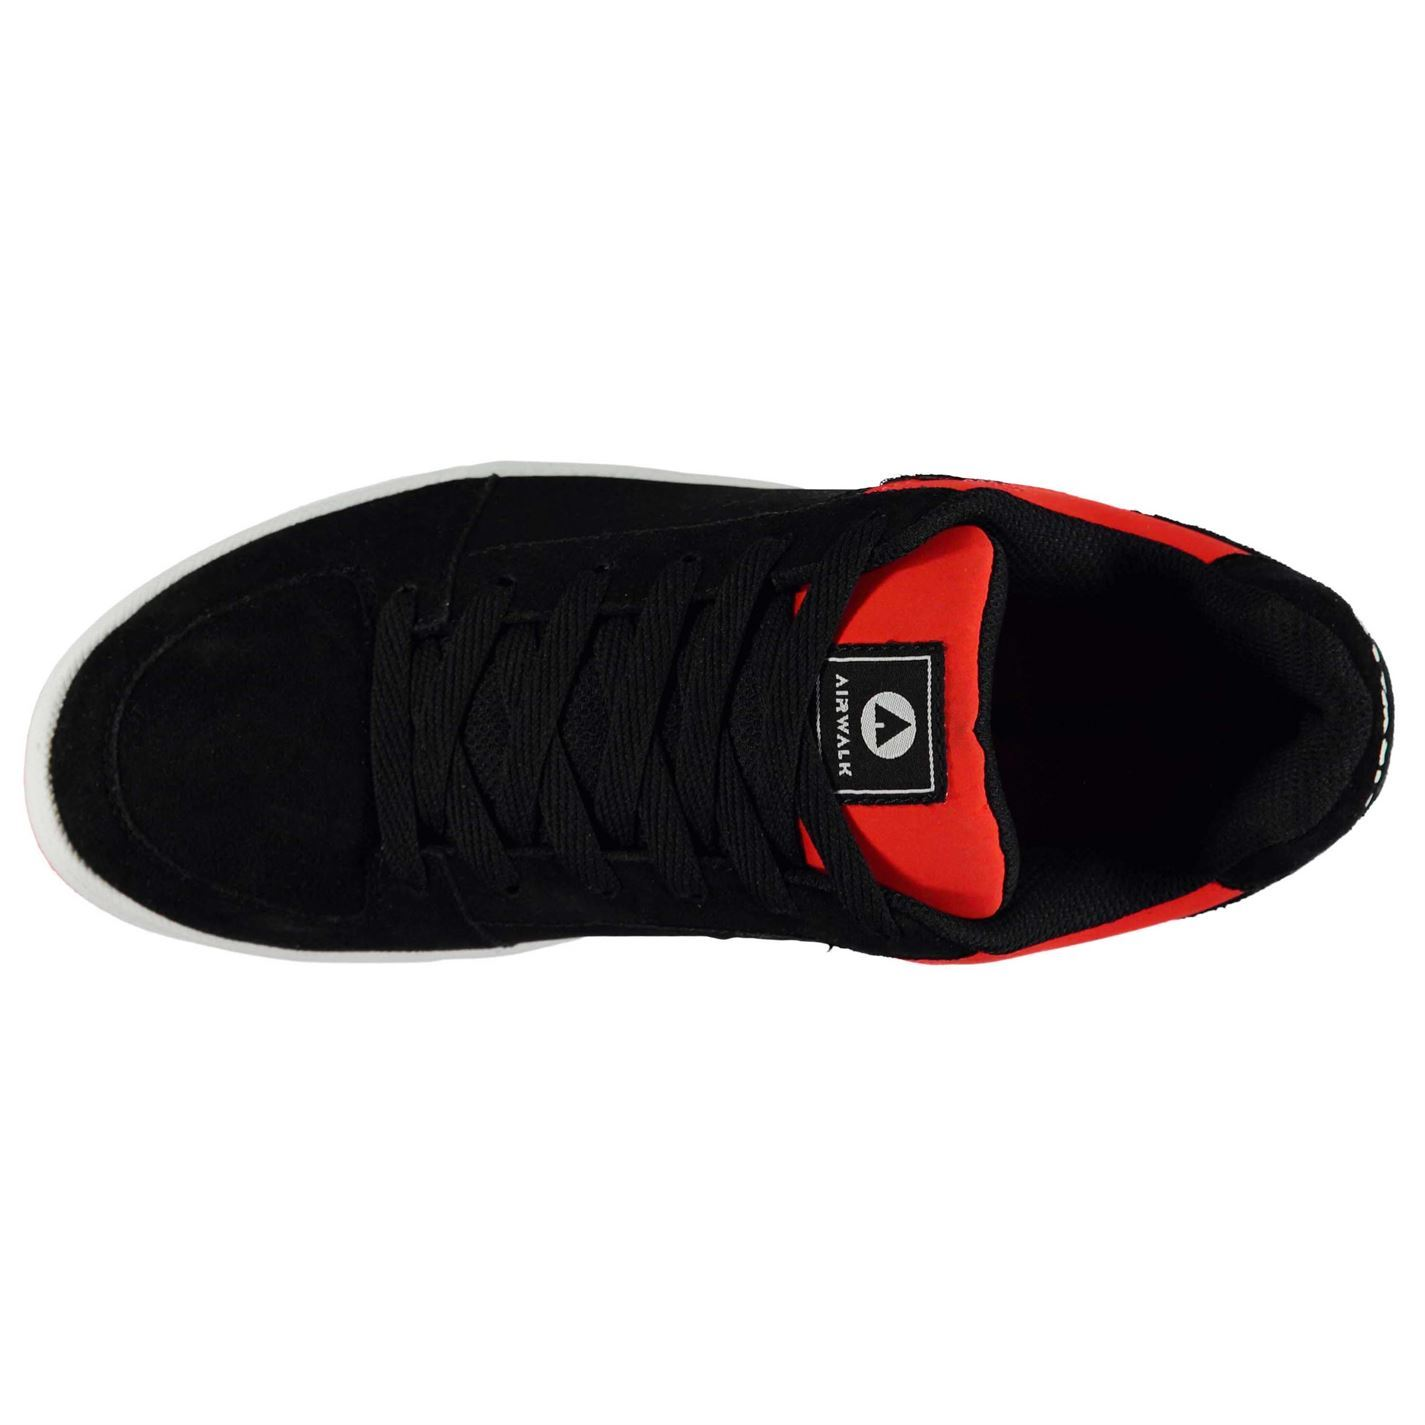 Airwalk-Mens-Brock-Skate-Shoes-Lace-Up-Suede-Accents-Sport-Casual-Trainers